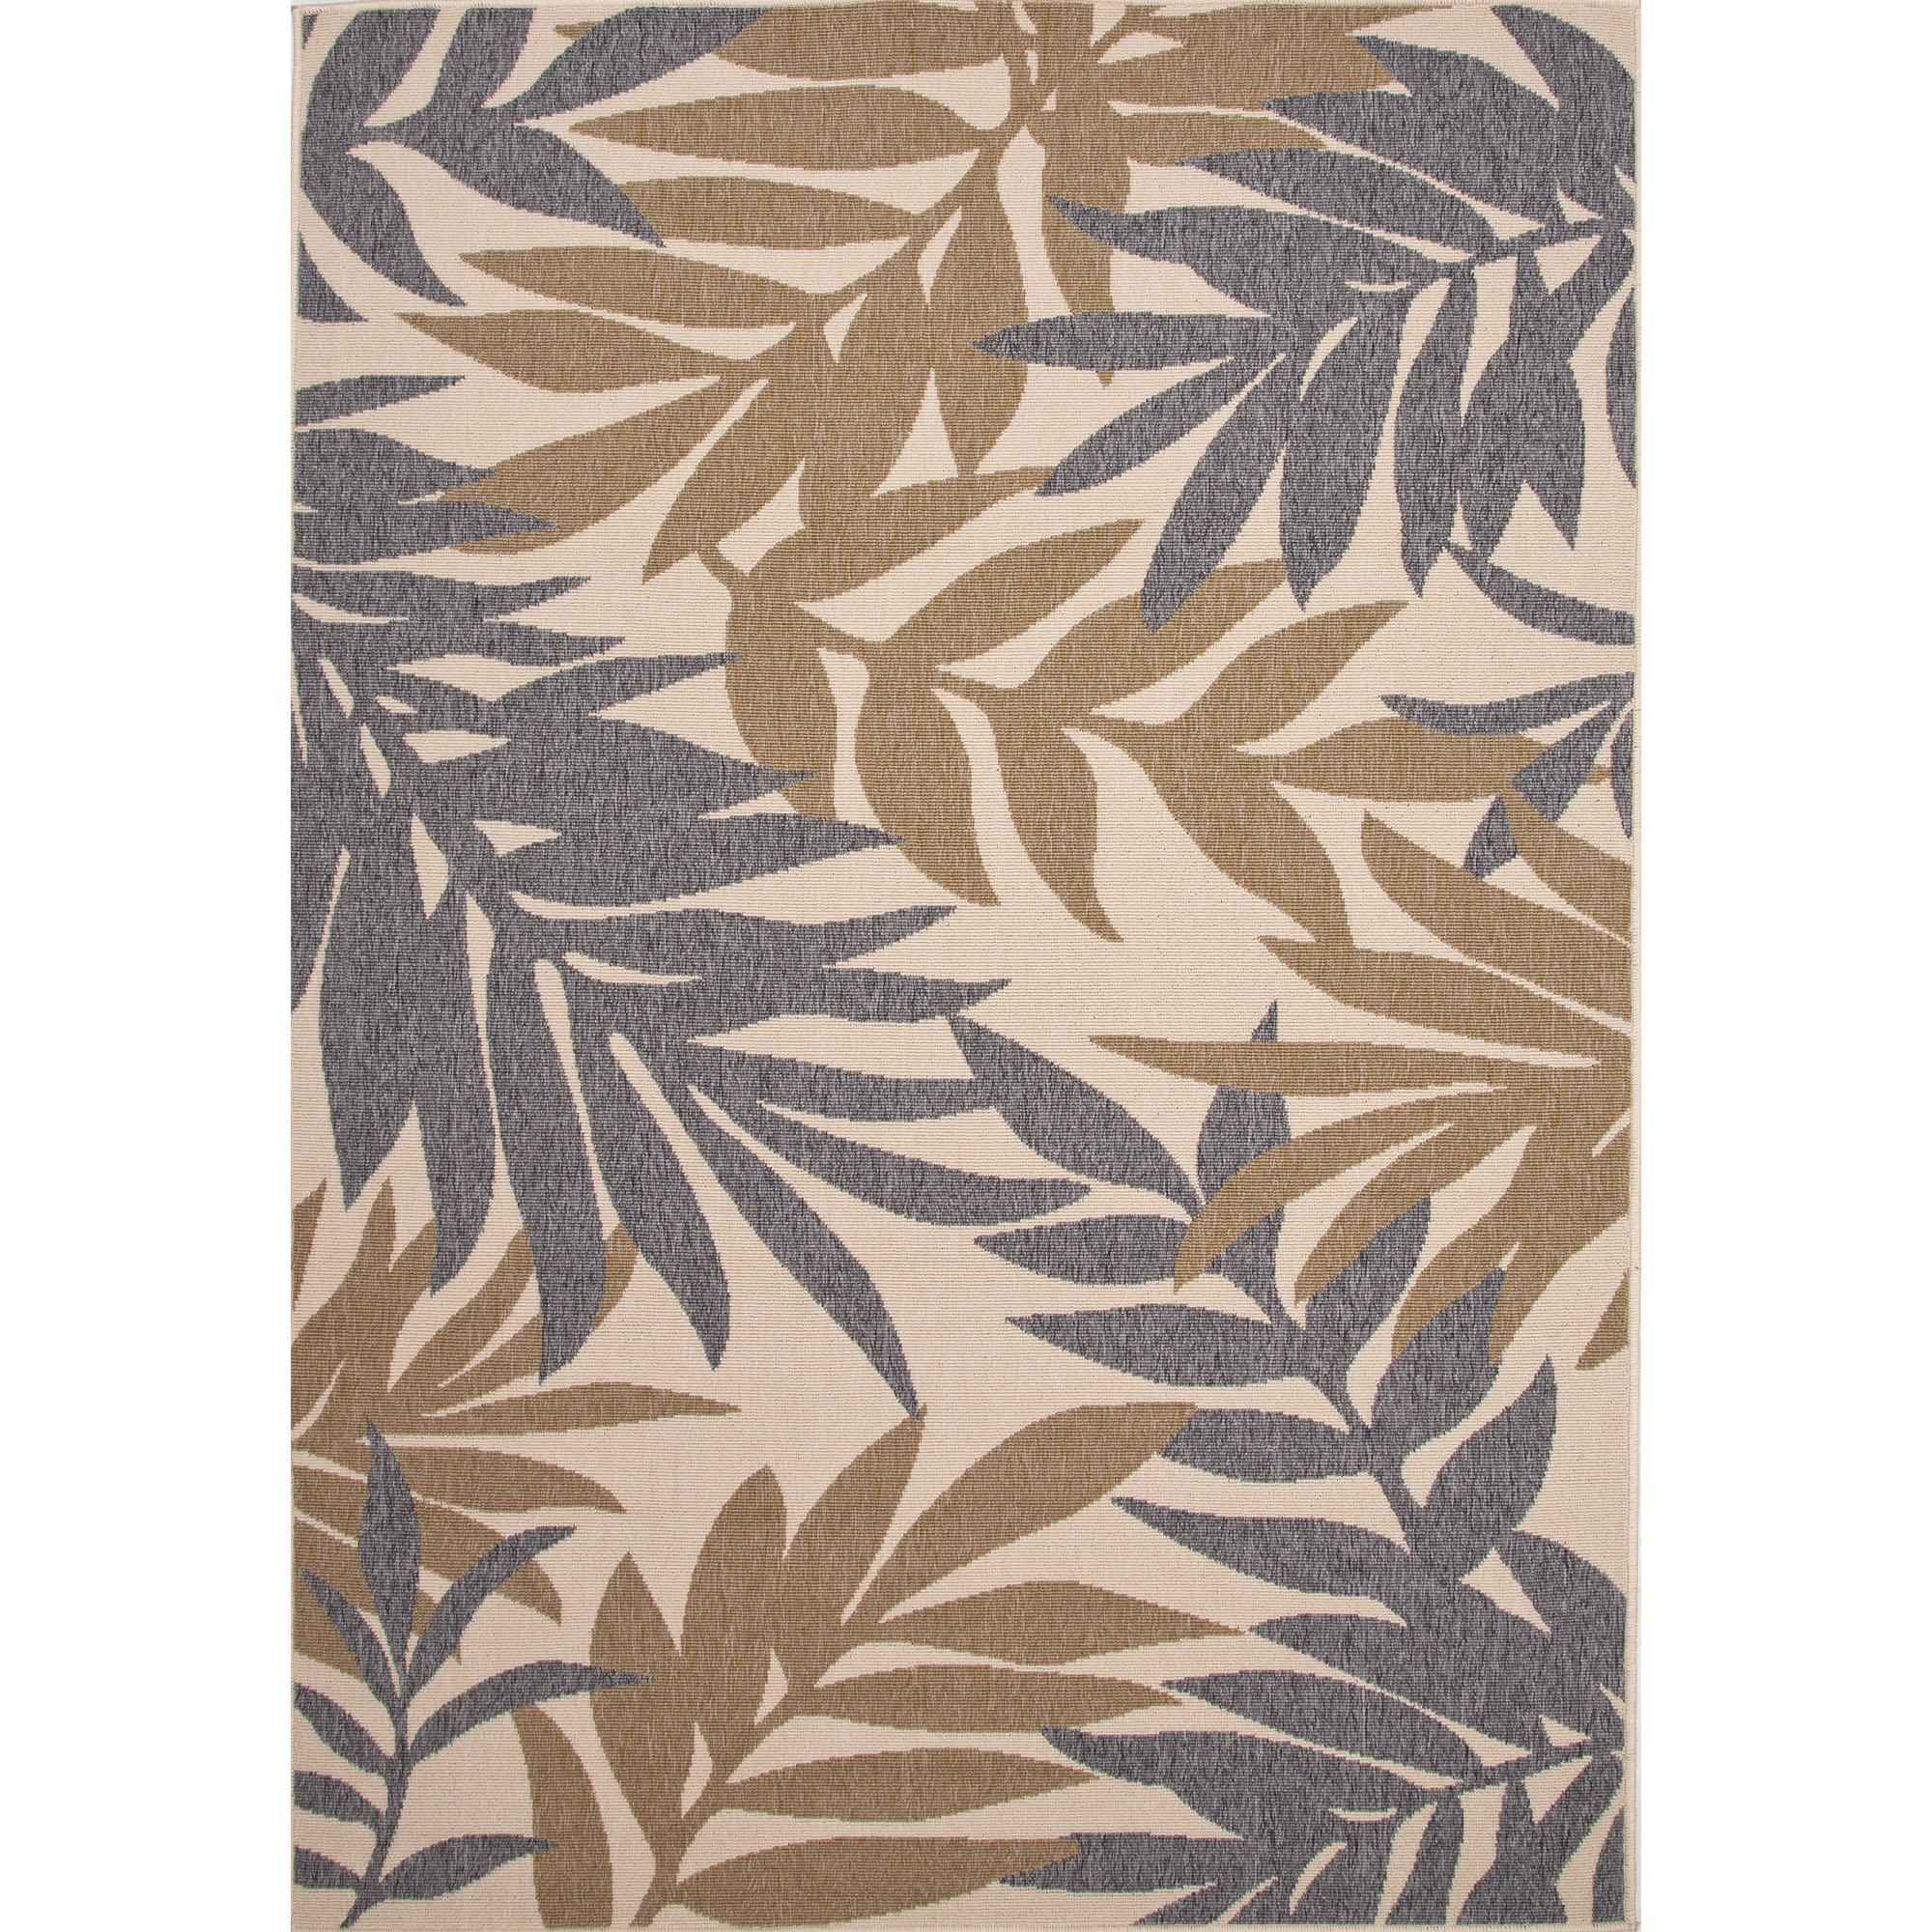 Bloom 2 x 3.7 Rug by JAIPUR Living at Malouf Furniture Co.